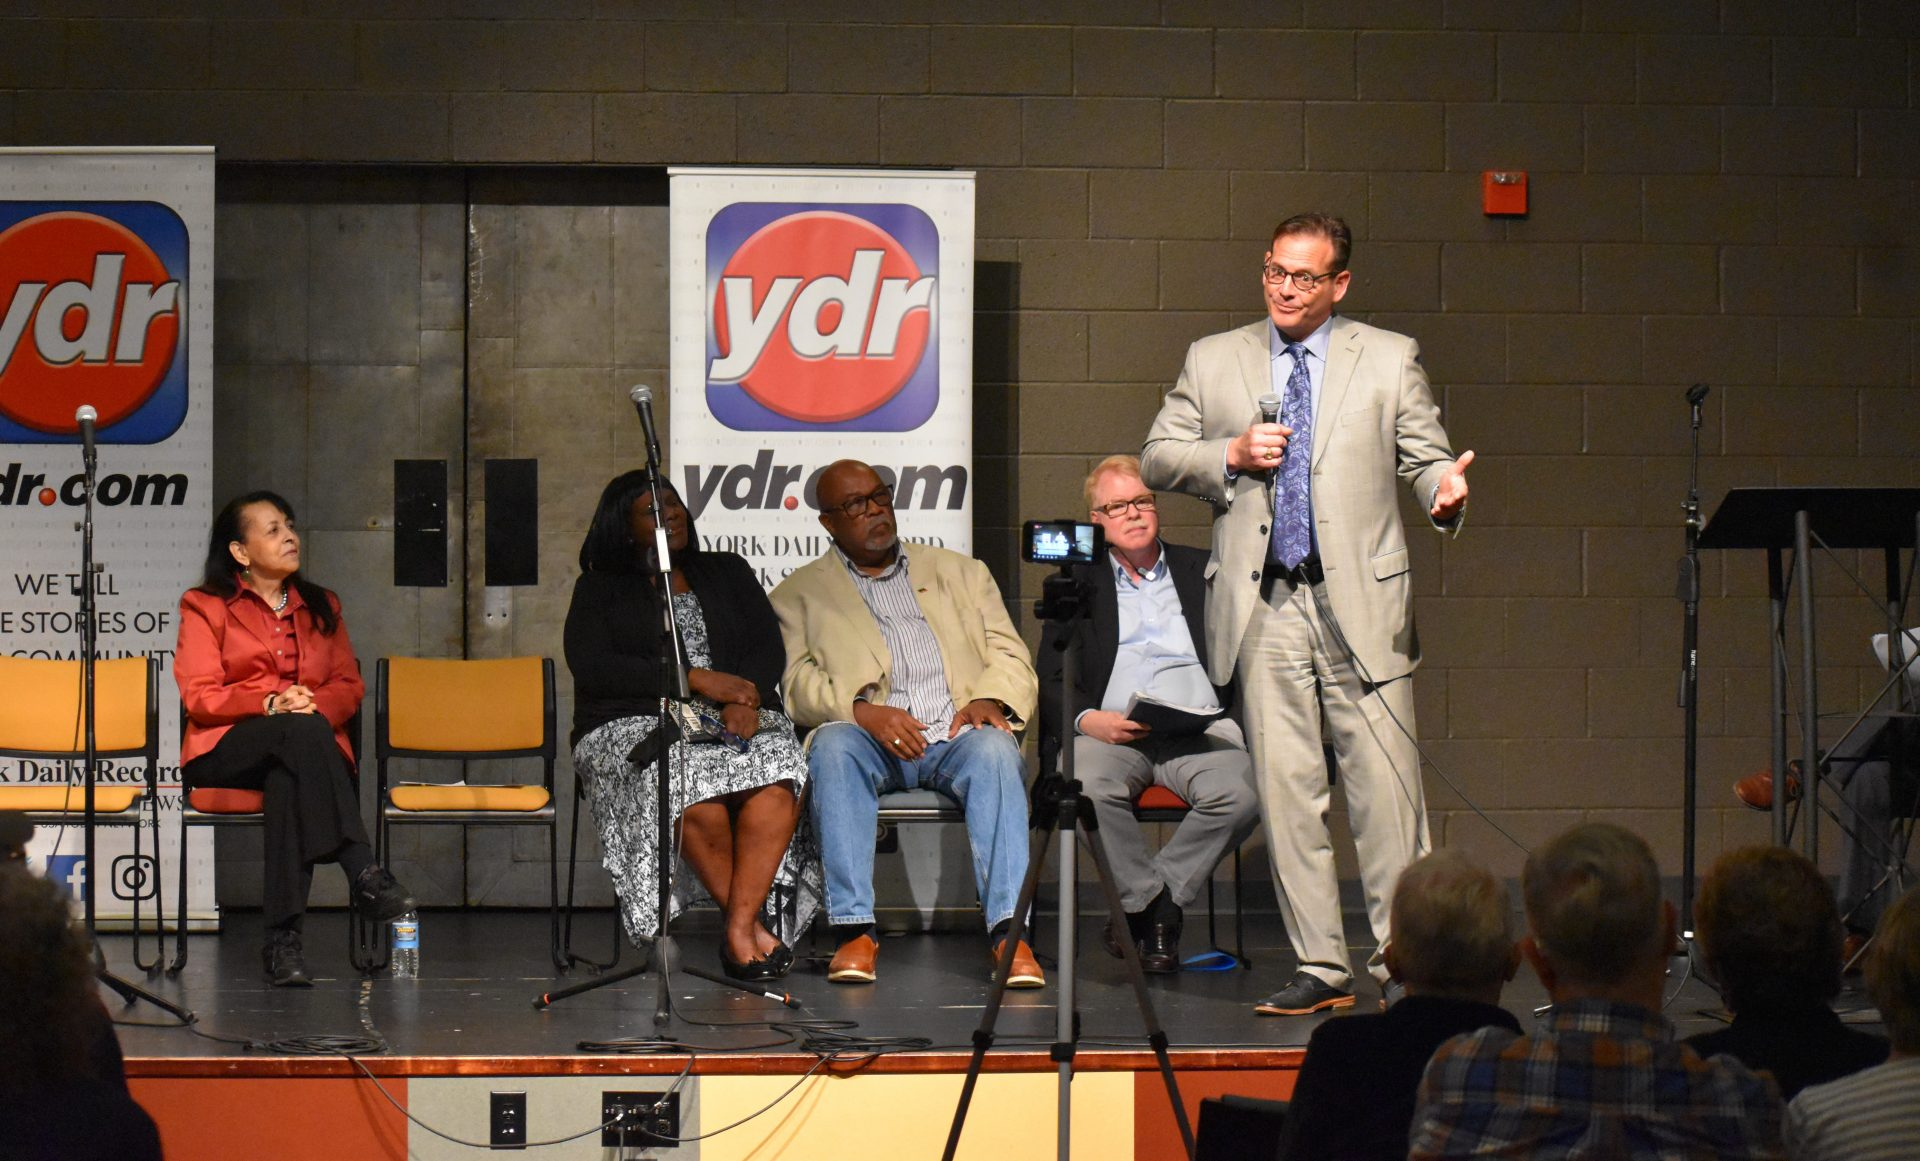 Tom Kelley speaks during a community event on April 23, 2019. Kelley was one of the prosecutors in the Lille Belle Allen murder case. He later became a York County judge before leaving the bench for private practice.